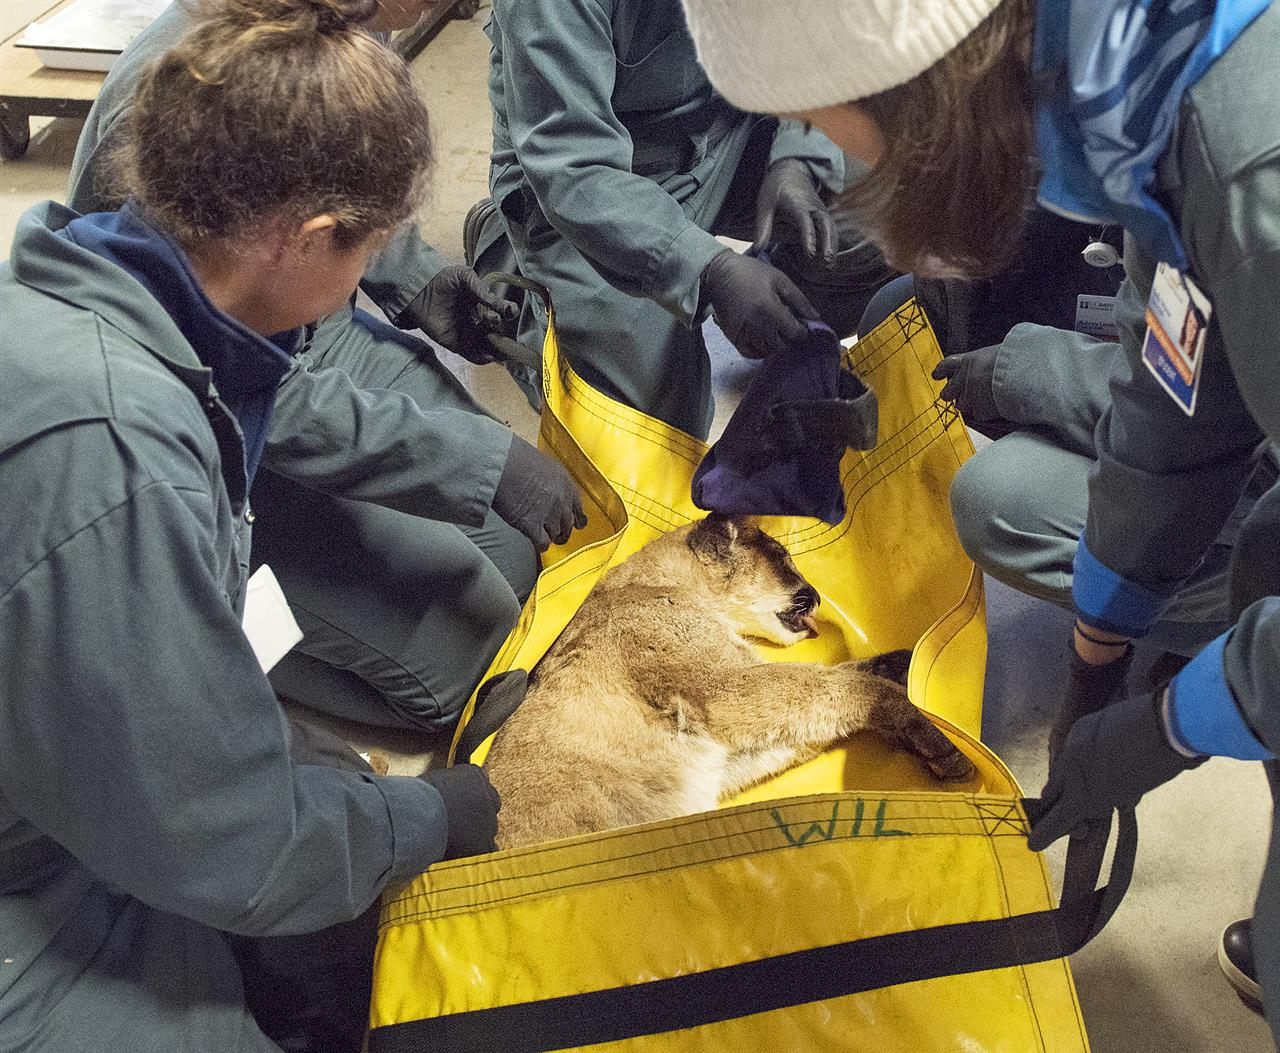 Mountain Lion Cub Burned In California Fire To Be Confined on Veterinary Hospital Surveys